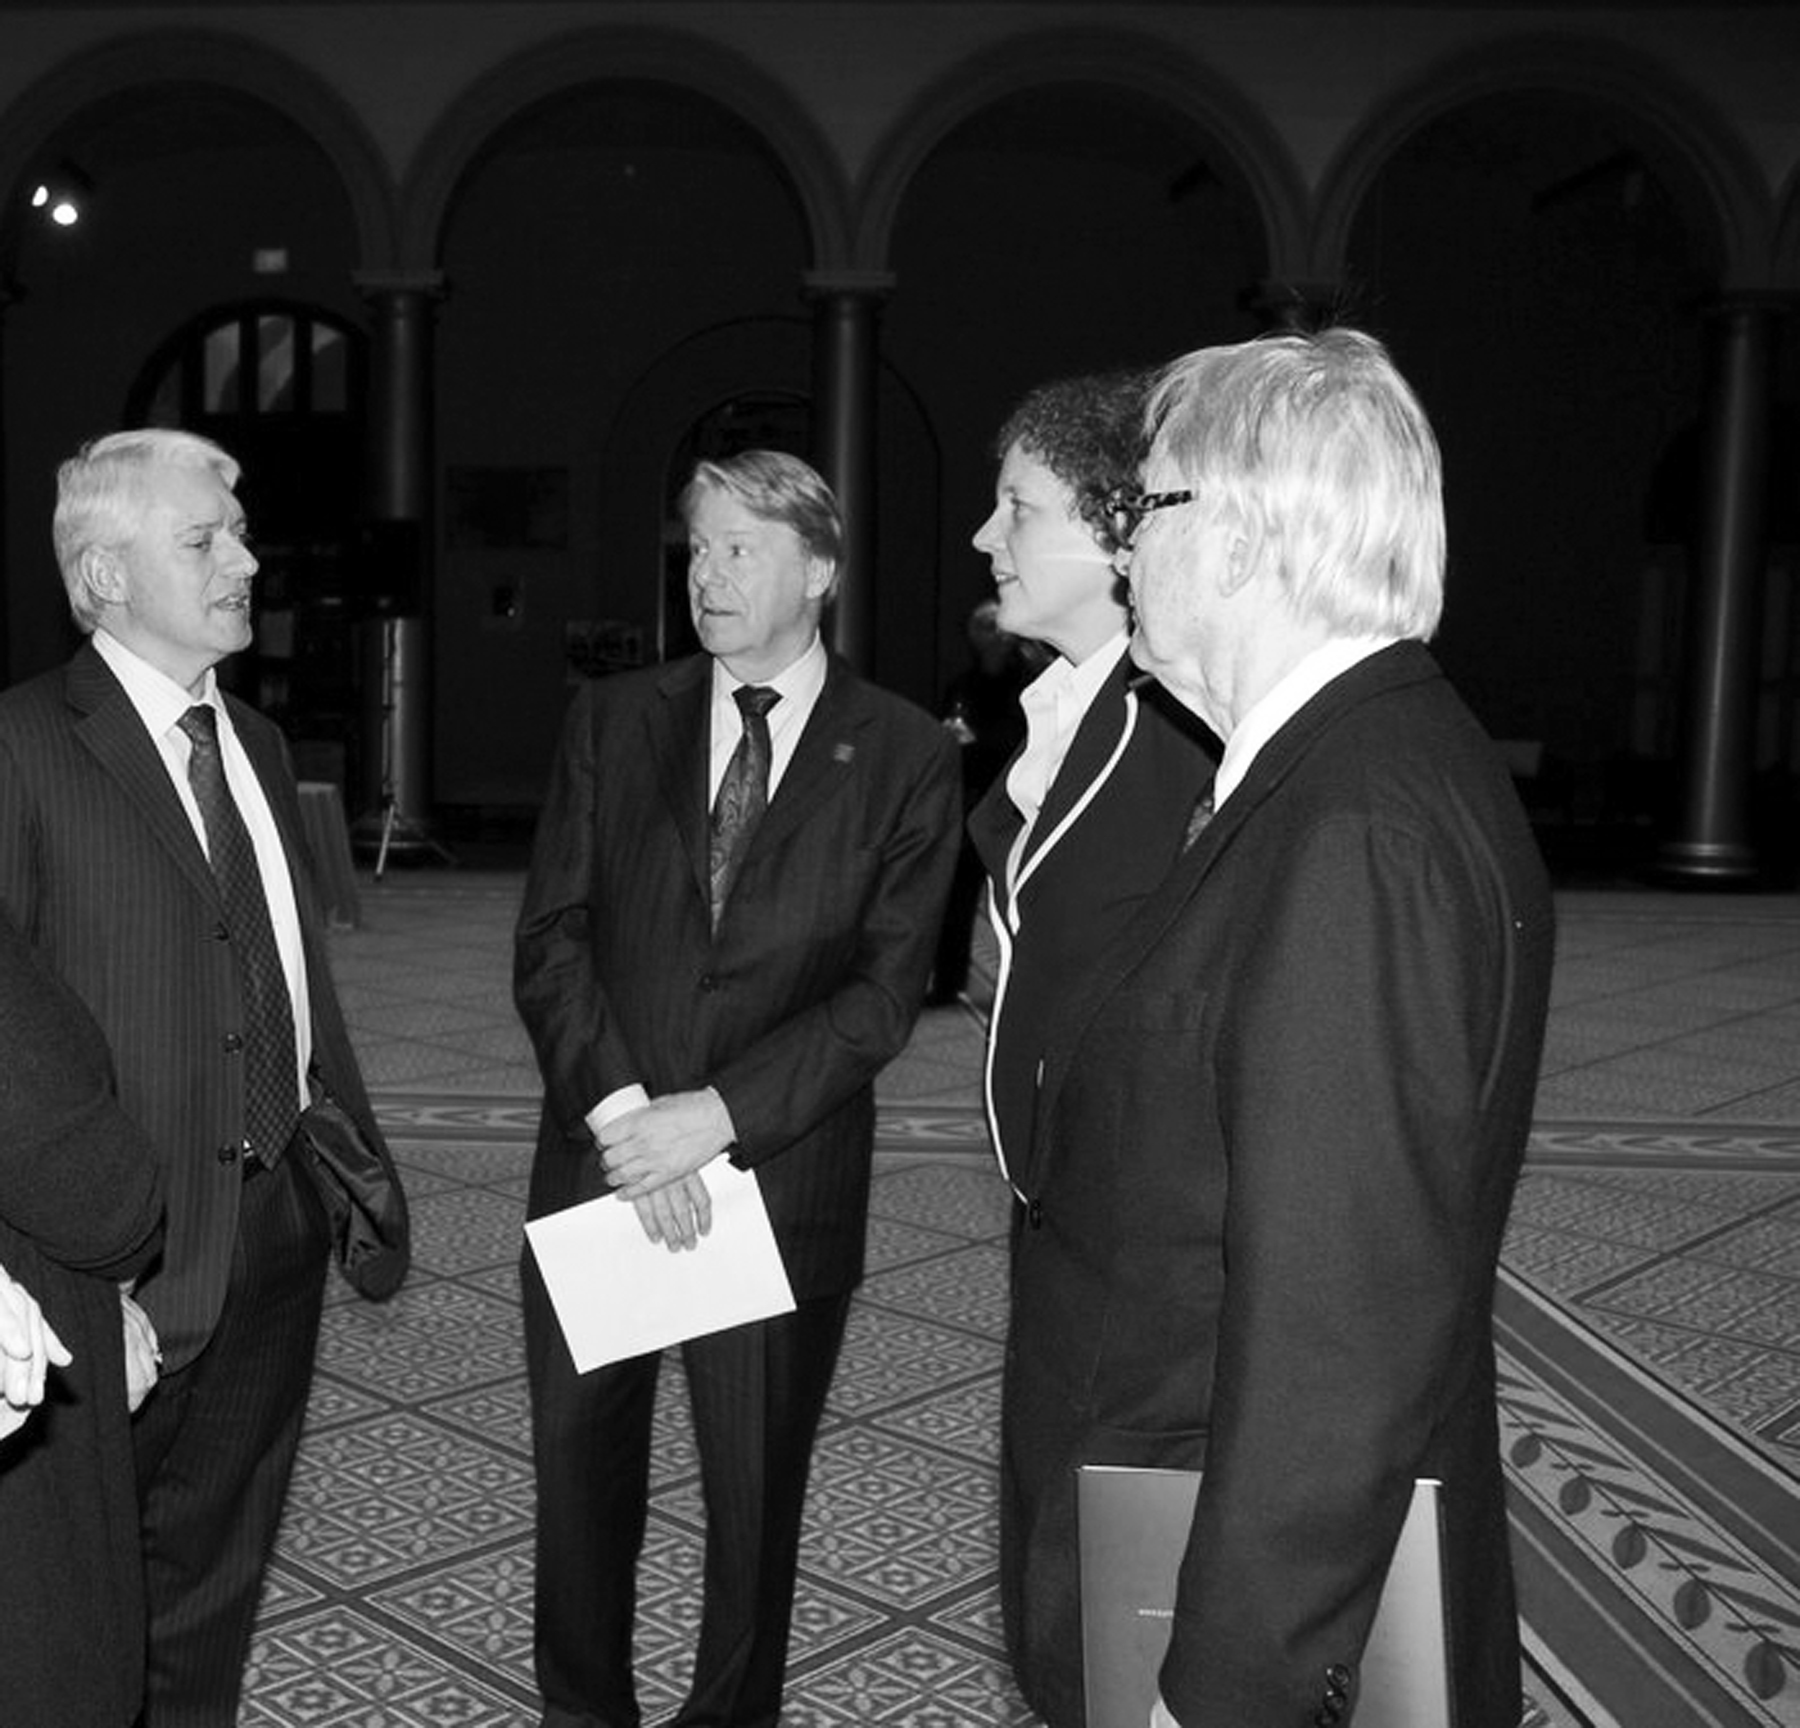 Ambassador Strømmen welcomes Larry Bruton, Margaret de Bolt and Robert Frasca from the architectural firm of Zimmer, Gunsul and Frasca at the openin gof the Detour exhibition in Washington, D.C. on Jan. 28. Photo: Erik Hoftun